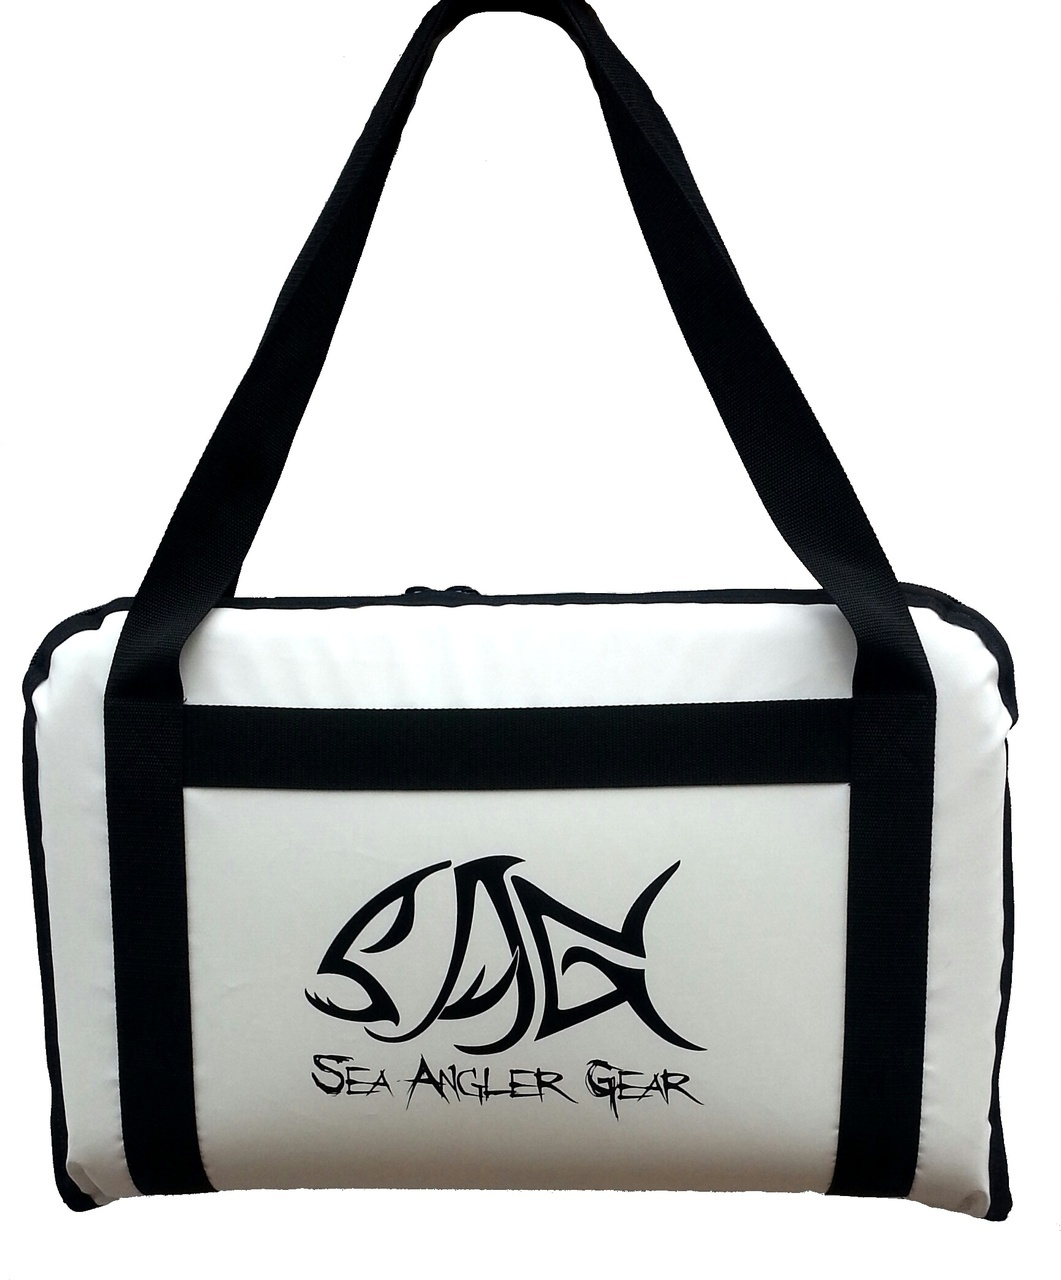 Insulated fishing bag 24 x 16 always an adventure for Insulated fish bag